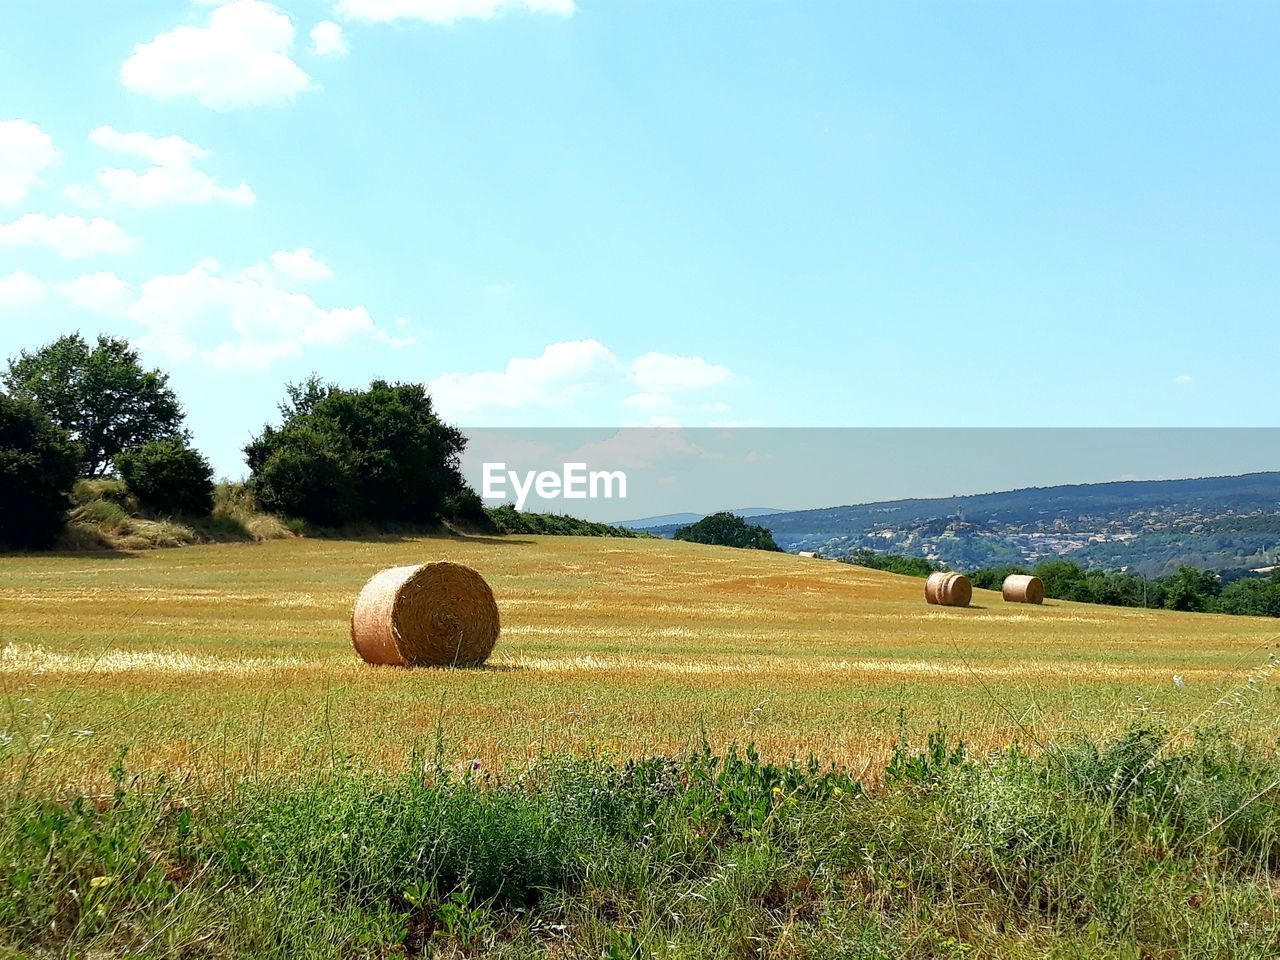 sky, field, plant, landscape, environment, land, bale, tree, hay, agriculture, tranquil scene, scenics - nature, nature, tranquility, beauty in nature, farm, rural scene, grass, day, cloud - sky, no people, outdoors